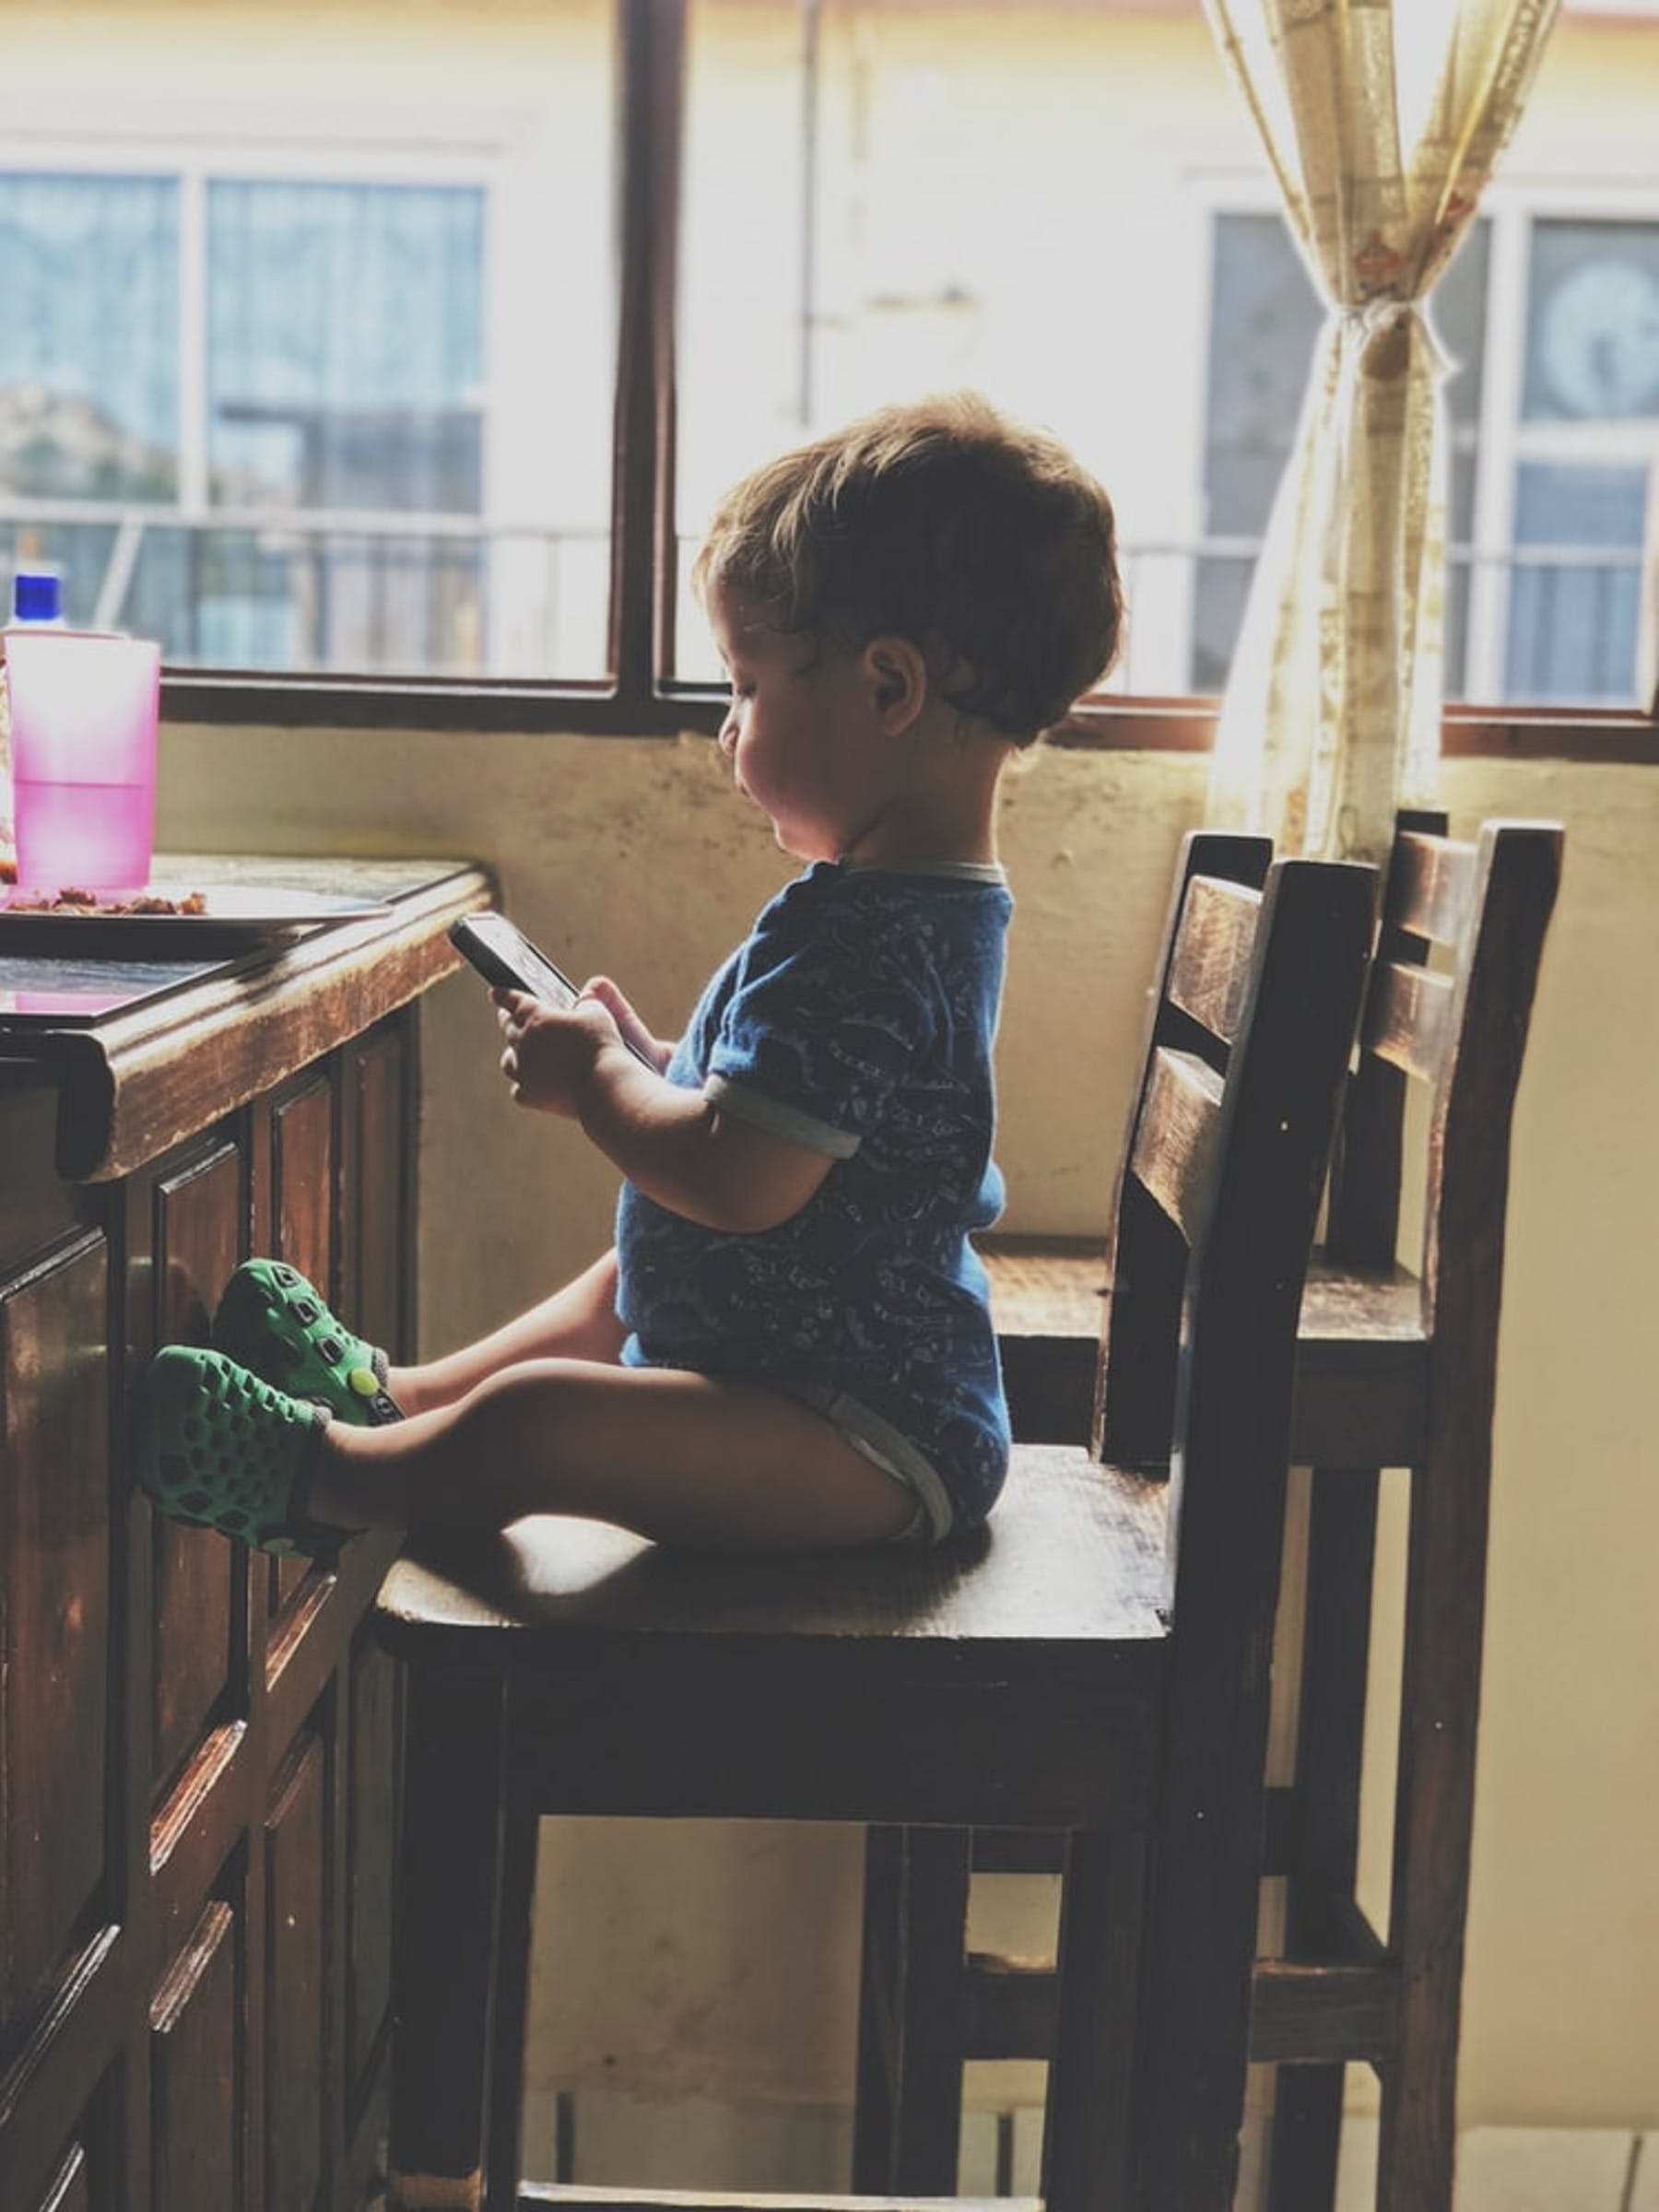 toddler using mobile phone